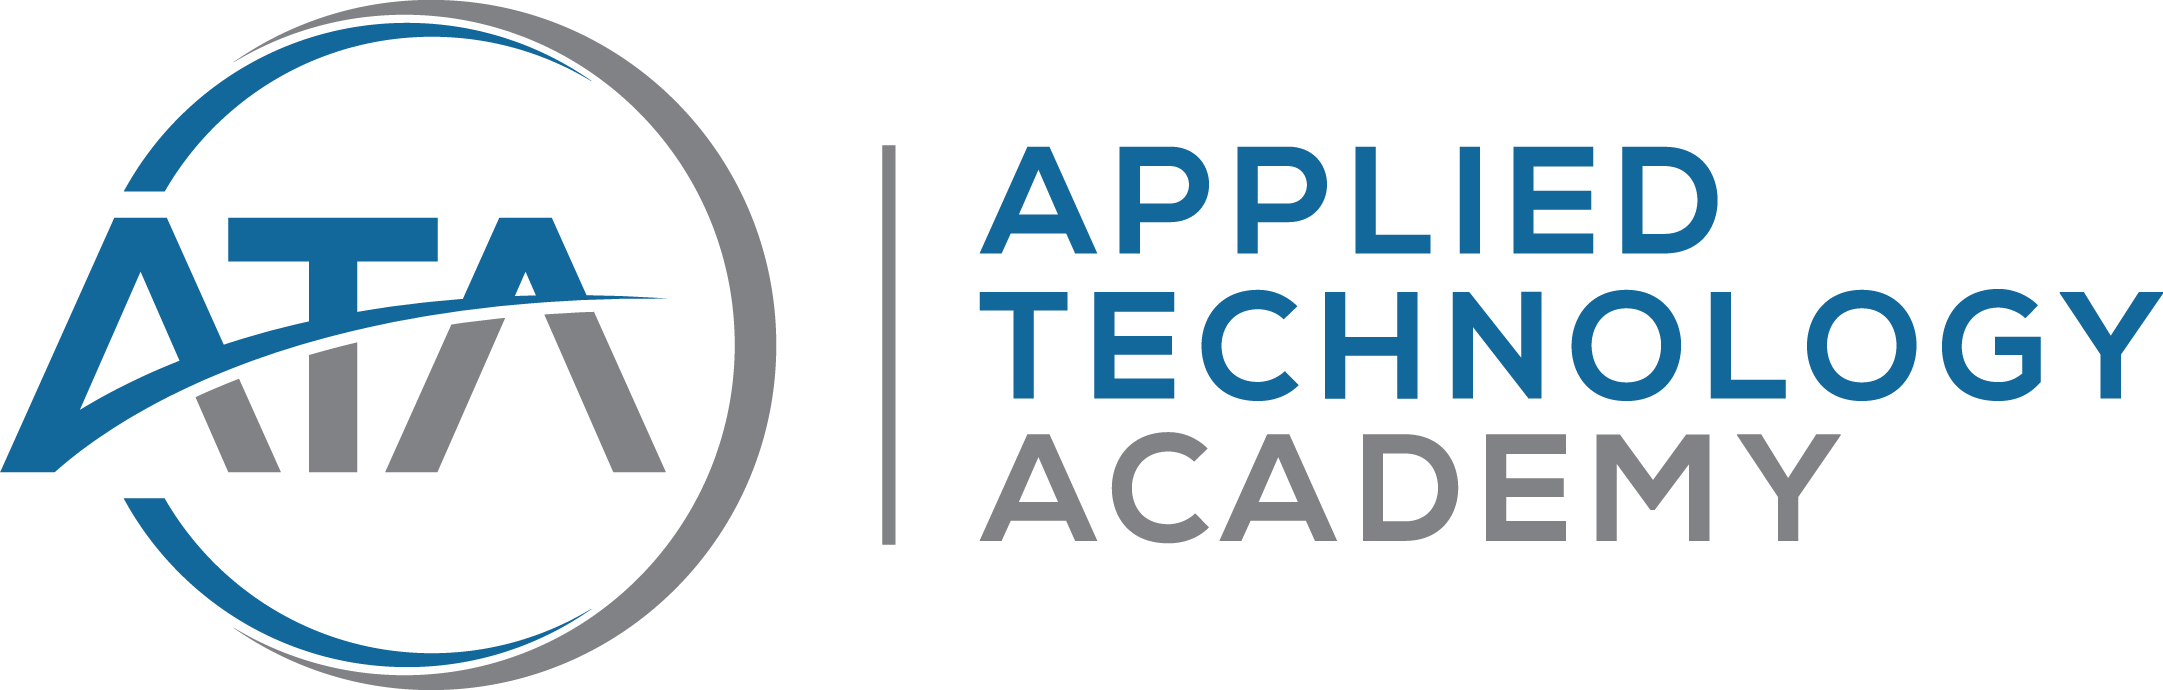 Applied Technology Academy